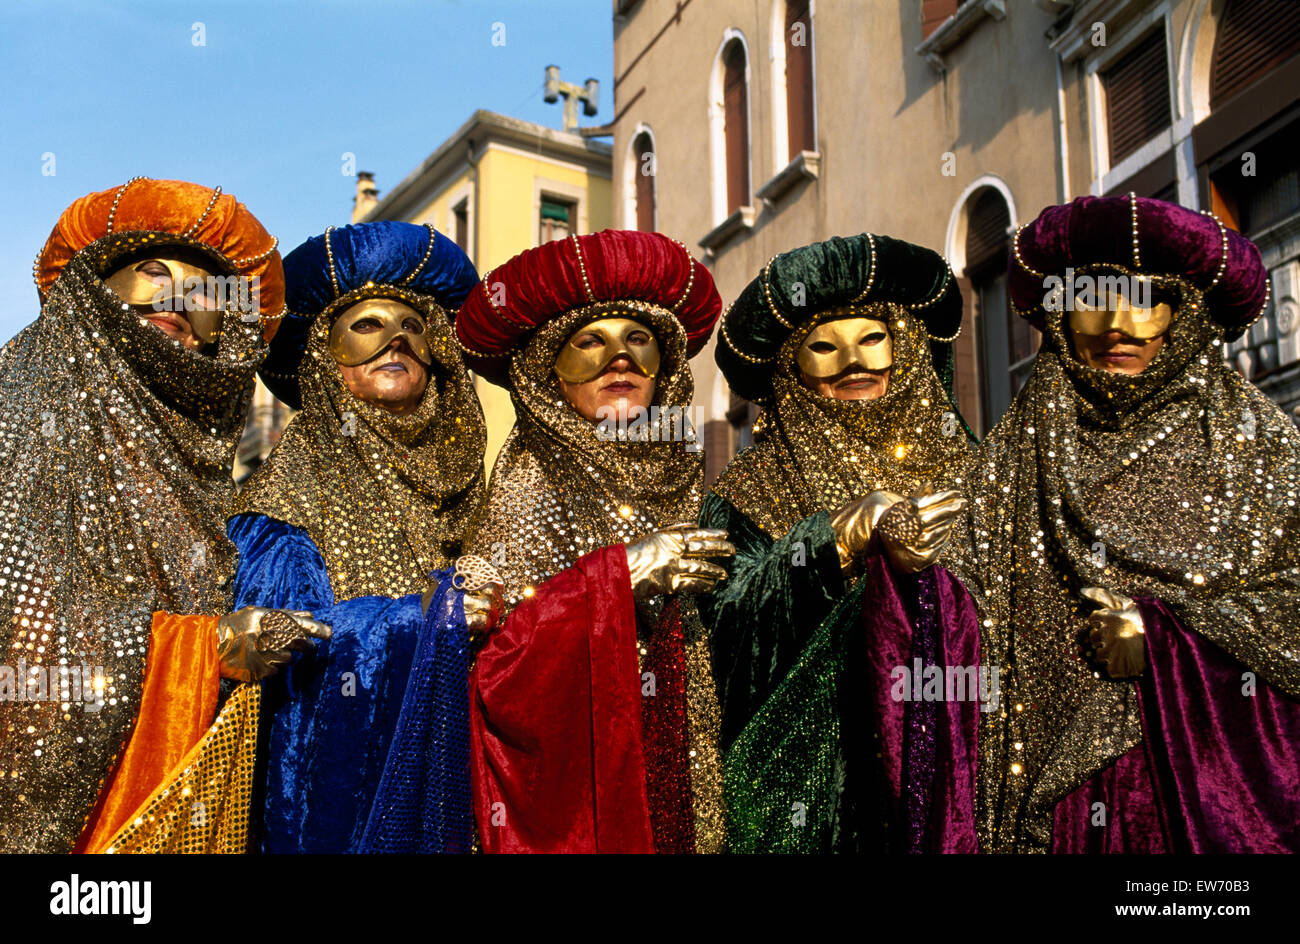 Revellers wearing traditional masks and robes at the Carnival in Venice         FOR EDITORIAL USE ONLY - Stock Image